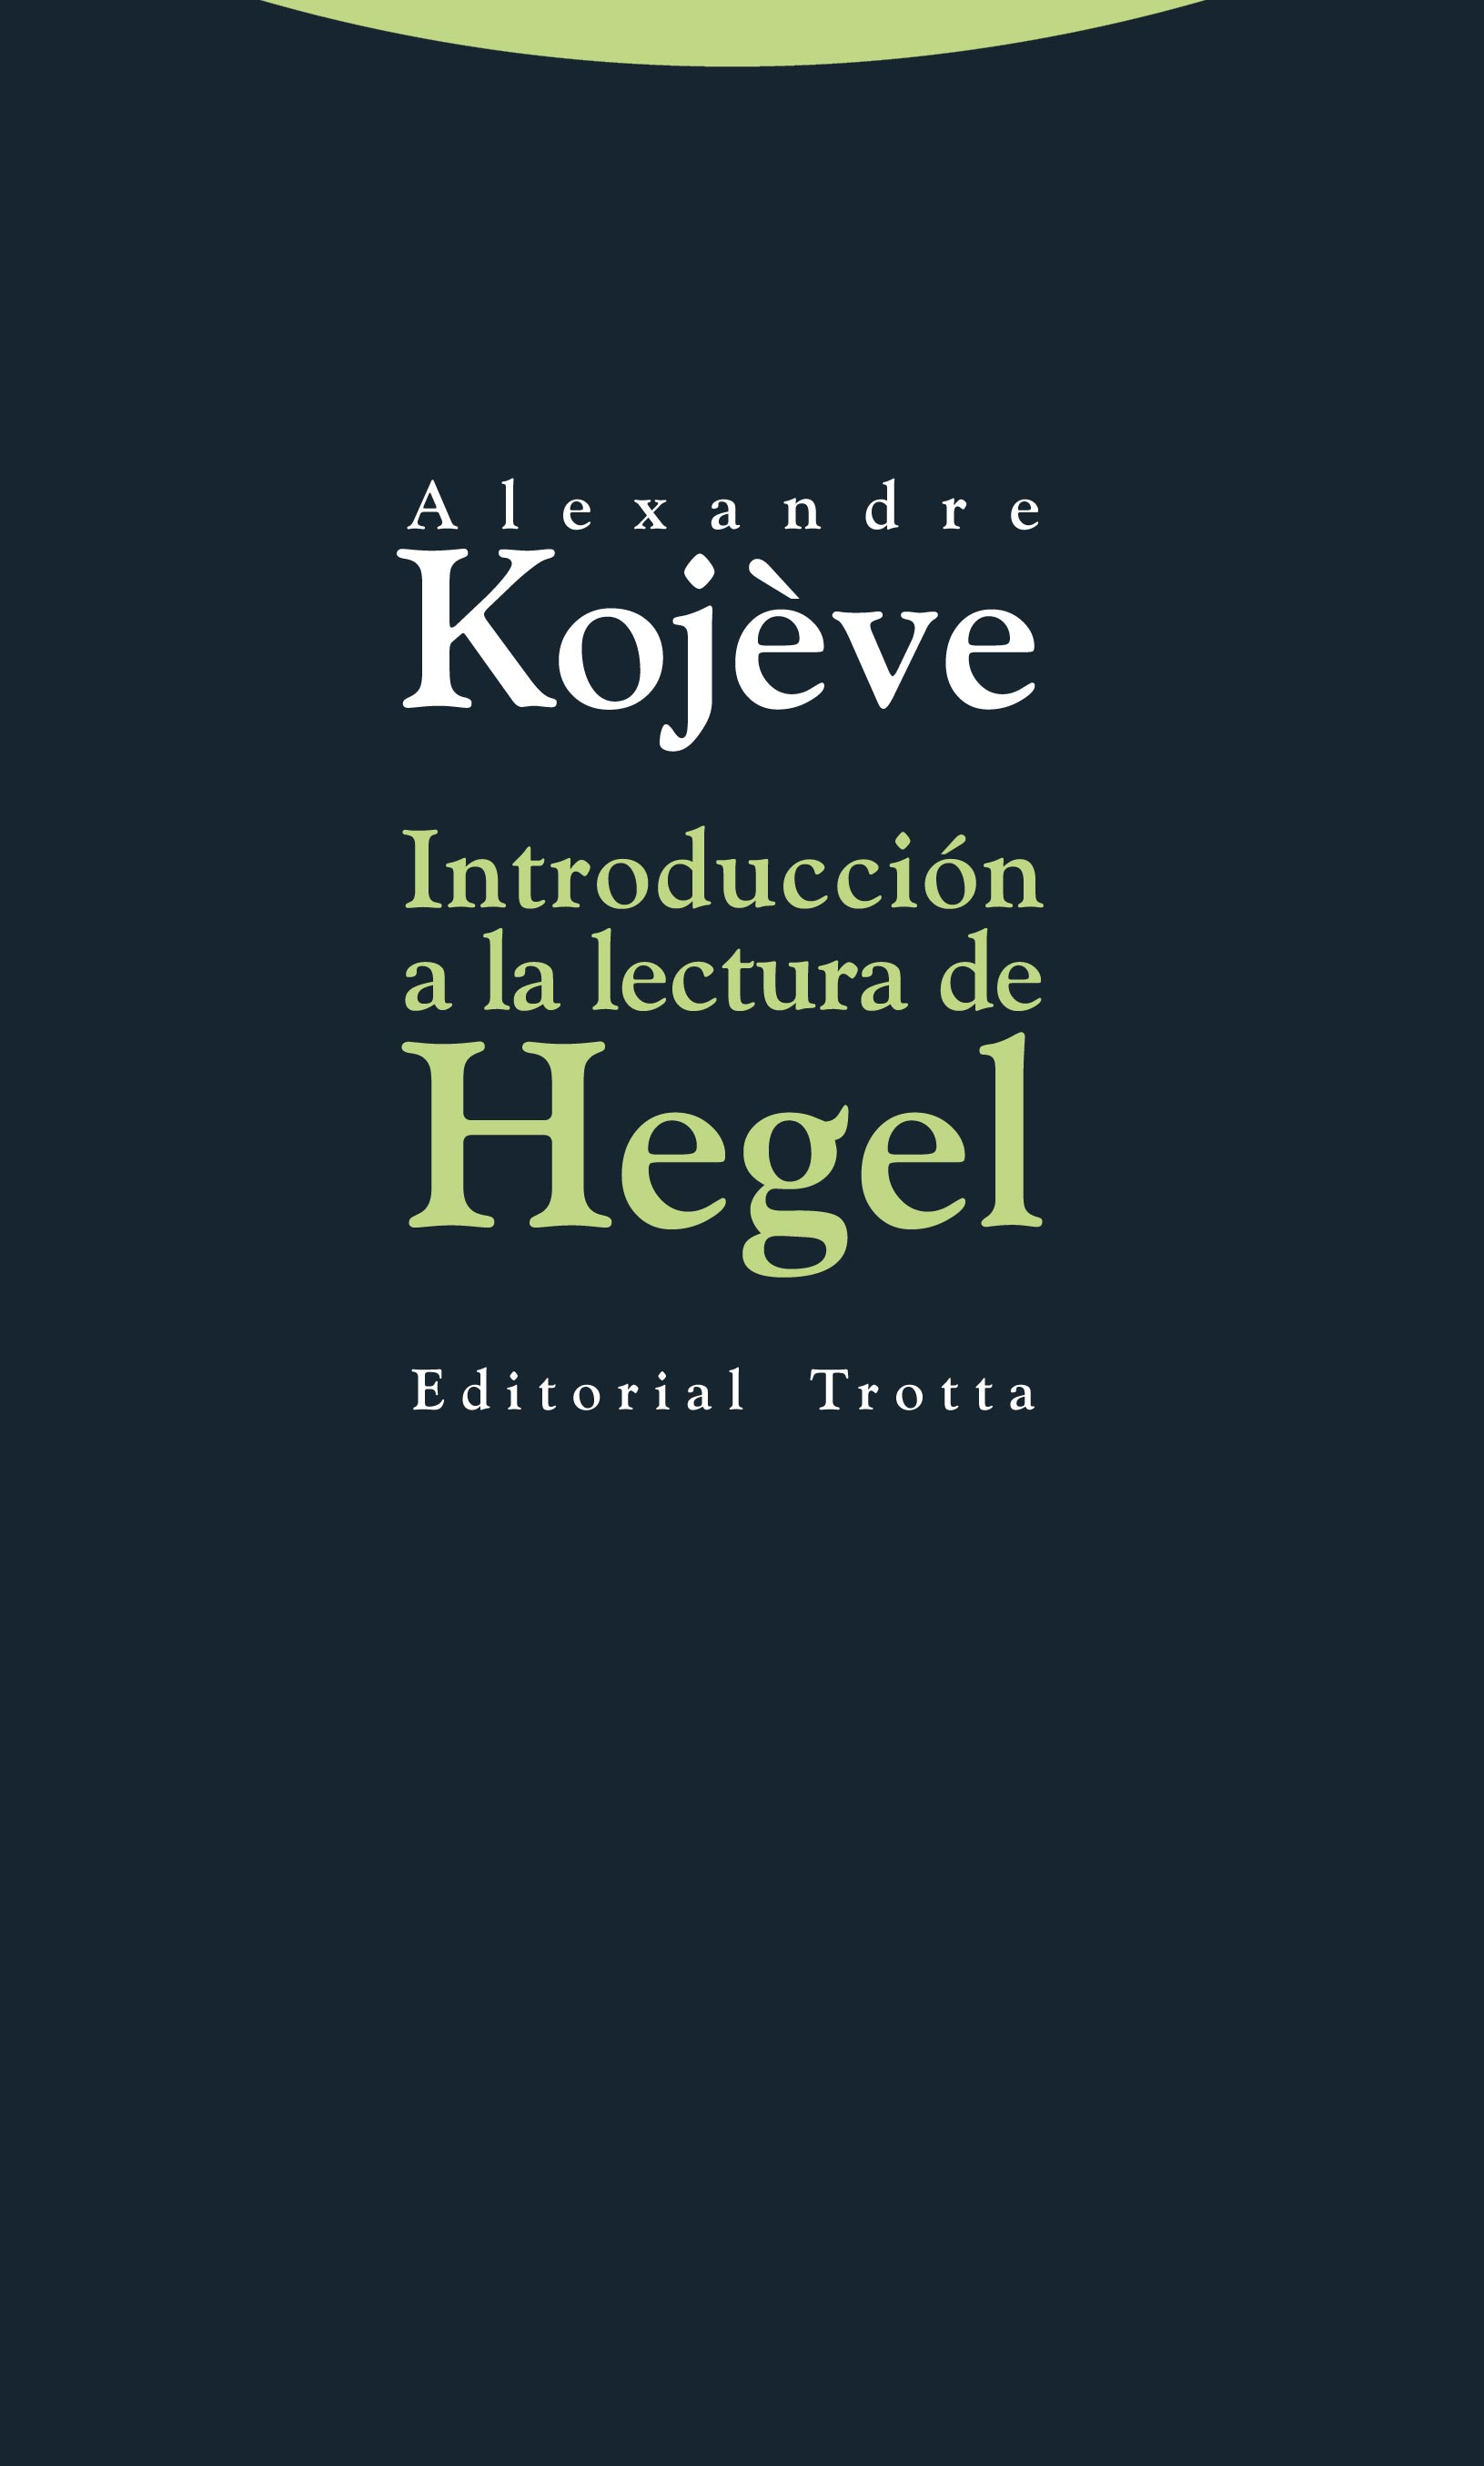 Como Descargar Libros En Kindle Descargar Introduccion A La Lectura De Hegel Epub Mobi Pdf